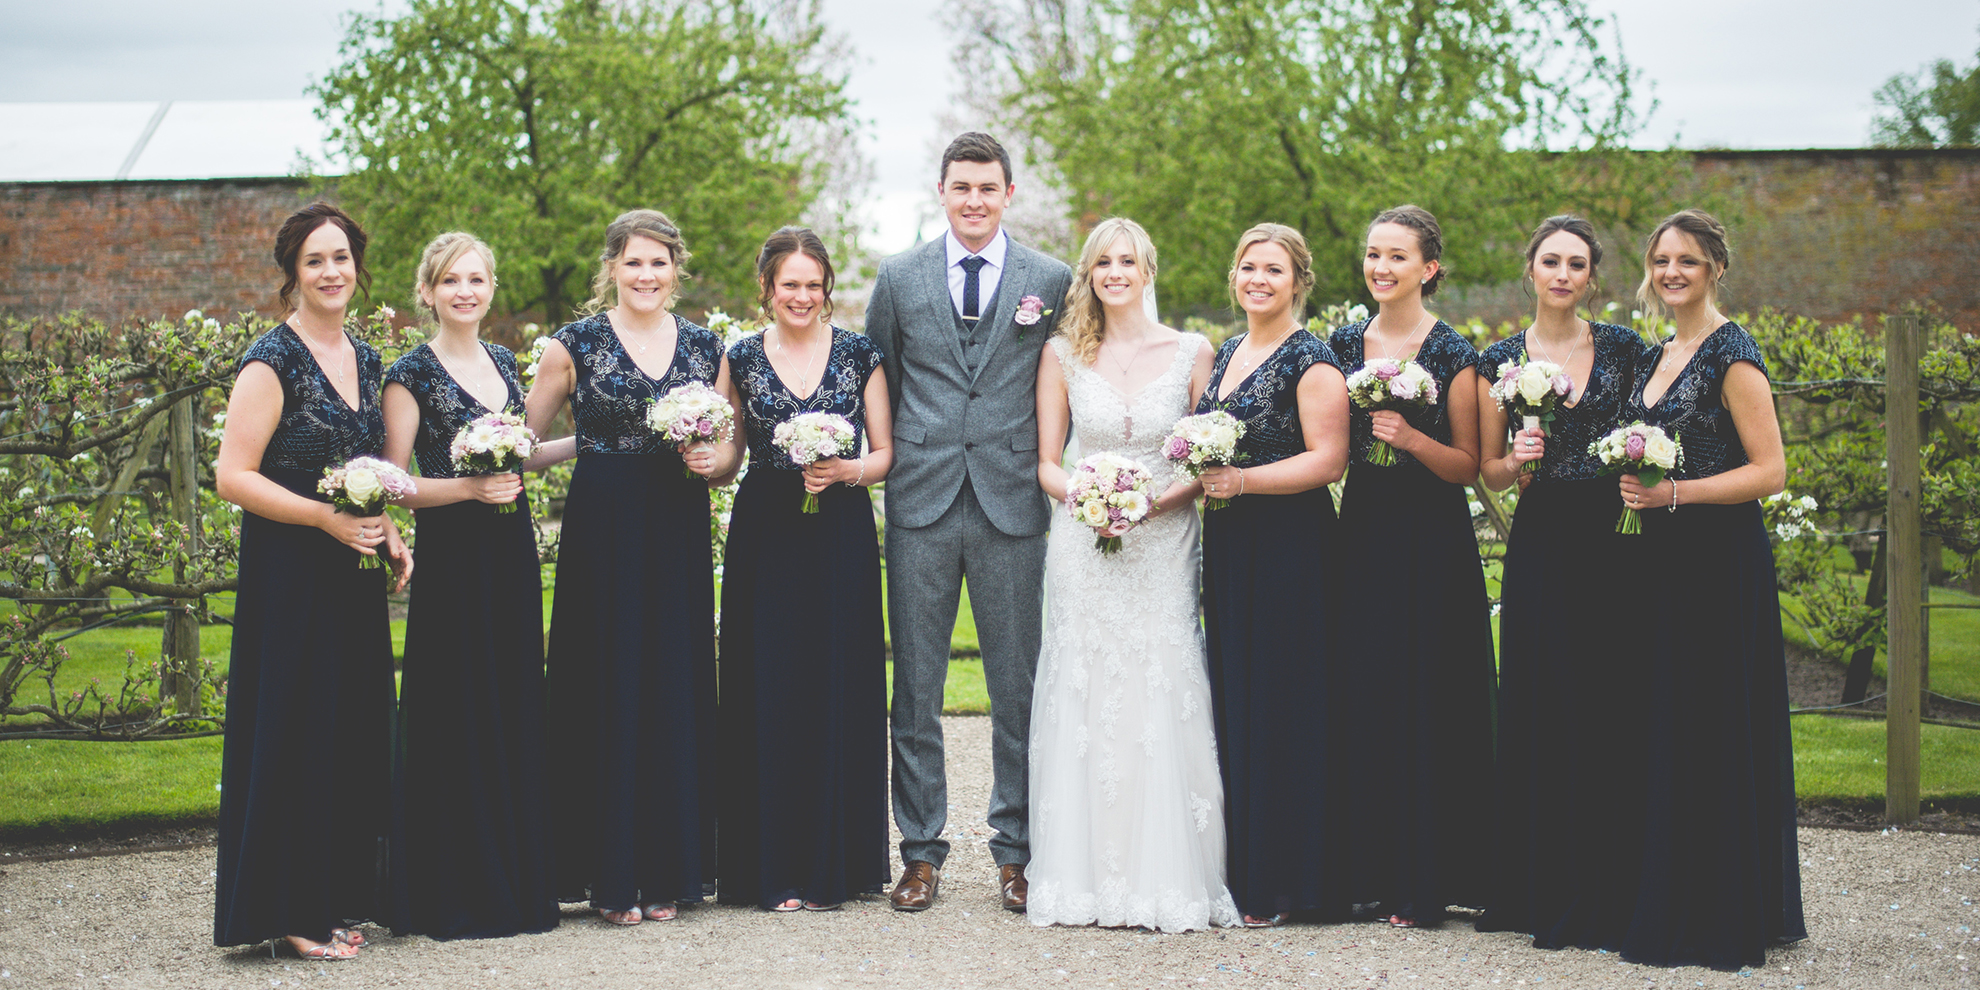 The newlyweds stand with their bridesmaids who are dressed in floor-length lack sequinned dresses – wedding ideas